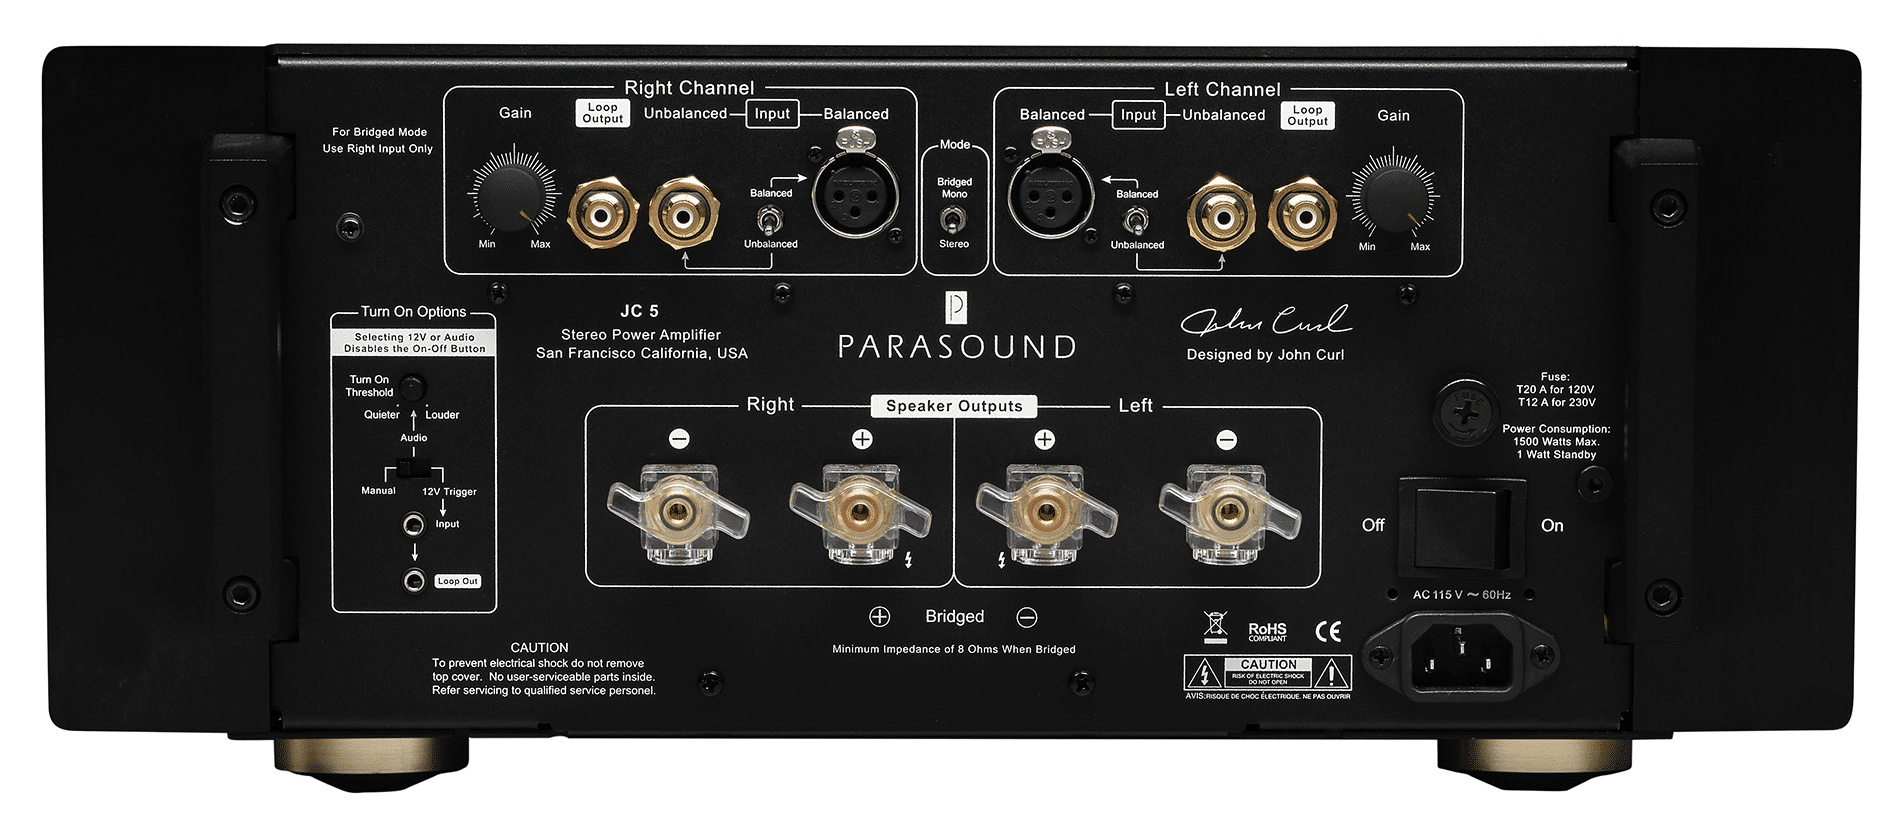 Halo JC5 stereo power amplifier From Parasound - The